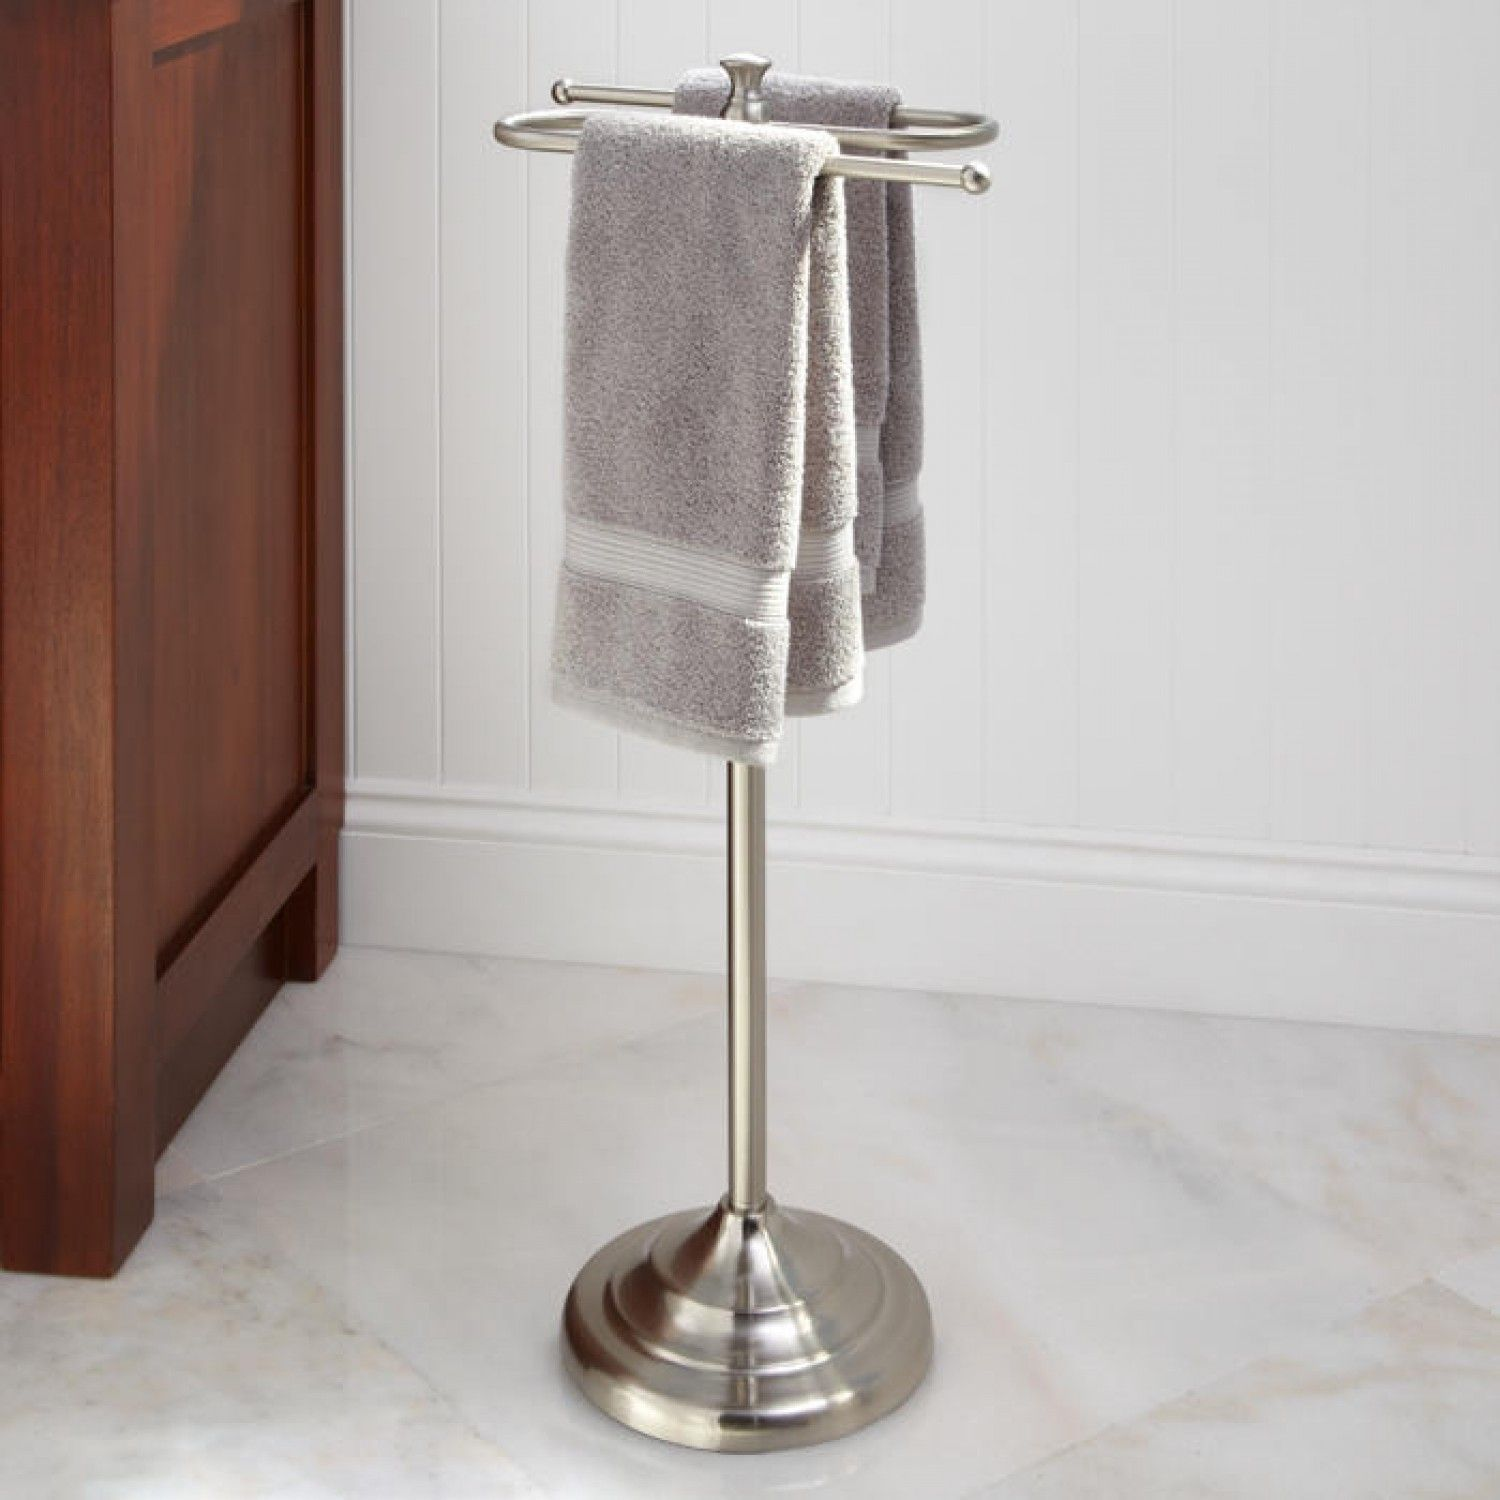 Towel Stands For Bathrooms Free Standing Towel Holder